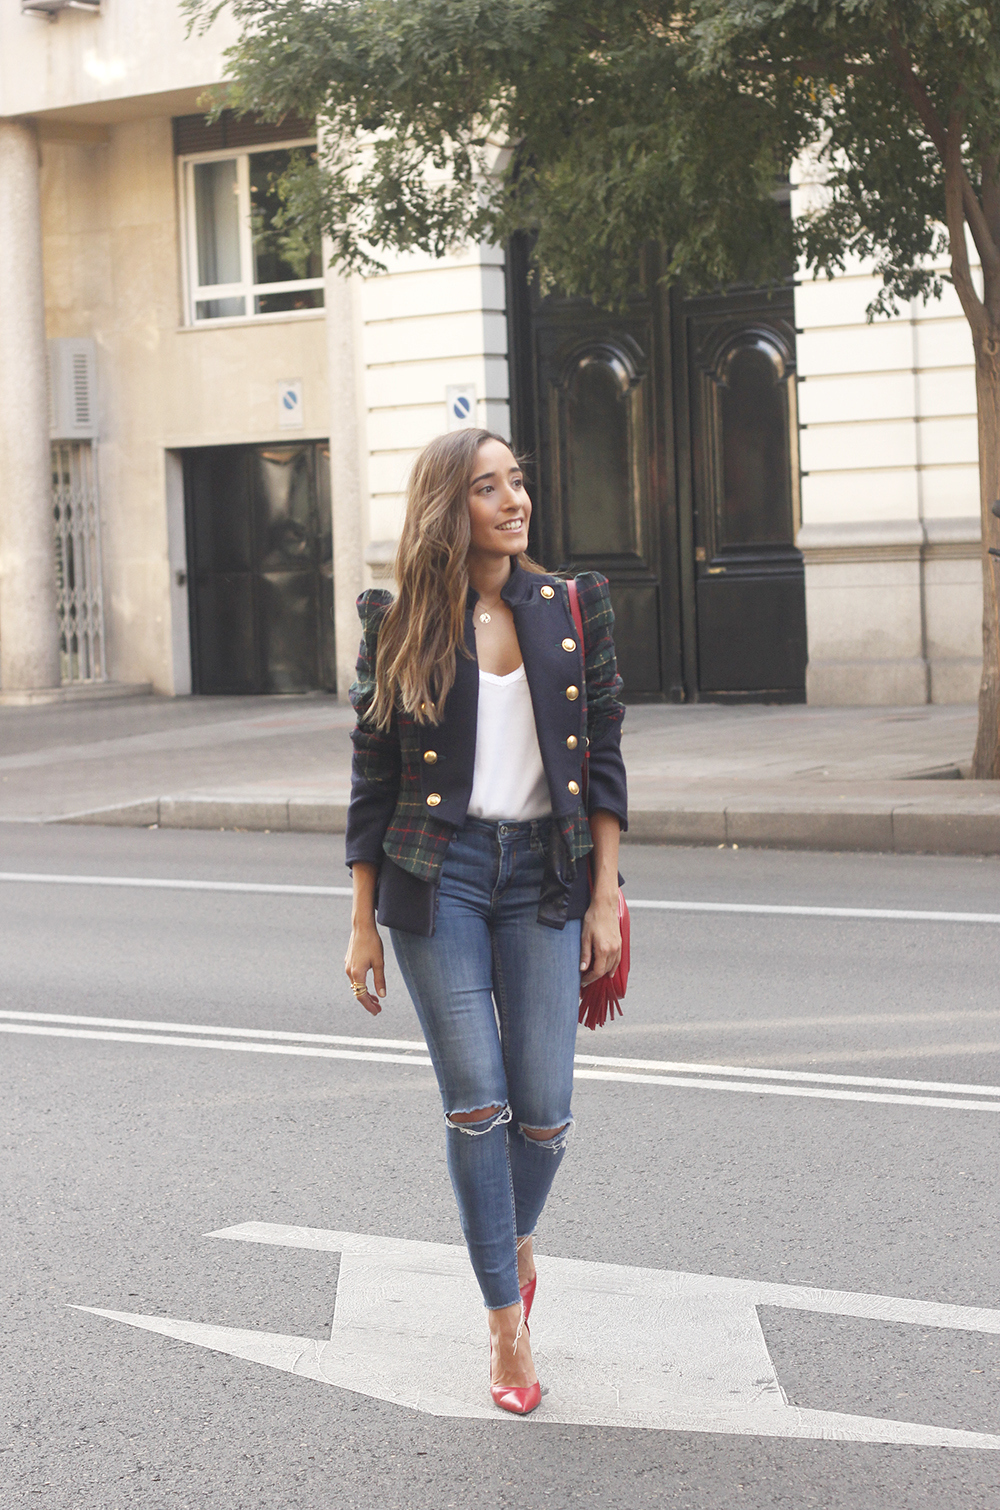 CHECKED BLAZER highly preppy gucci bag ripped jeans street style 2018 outfit11